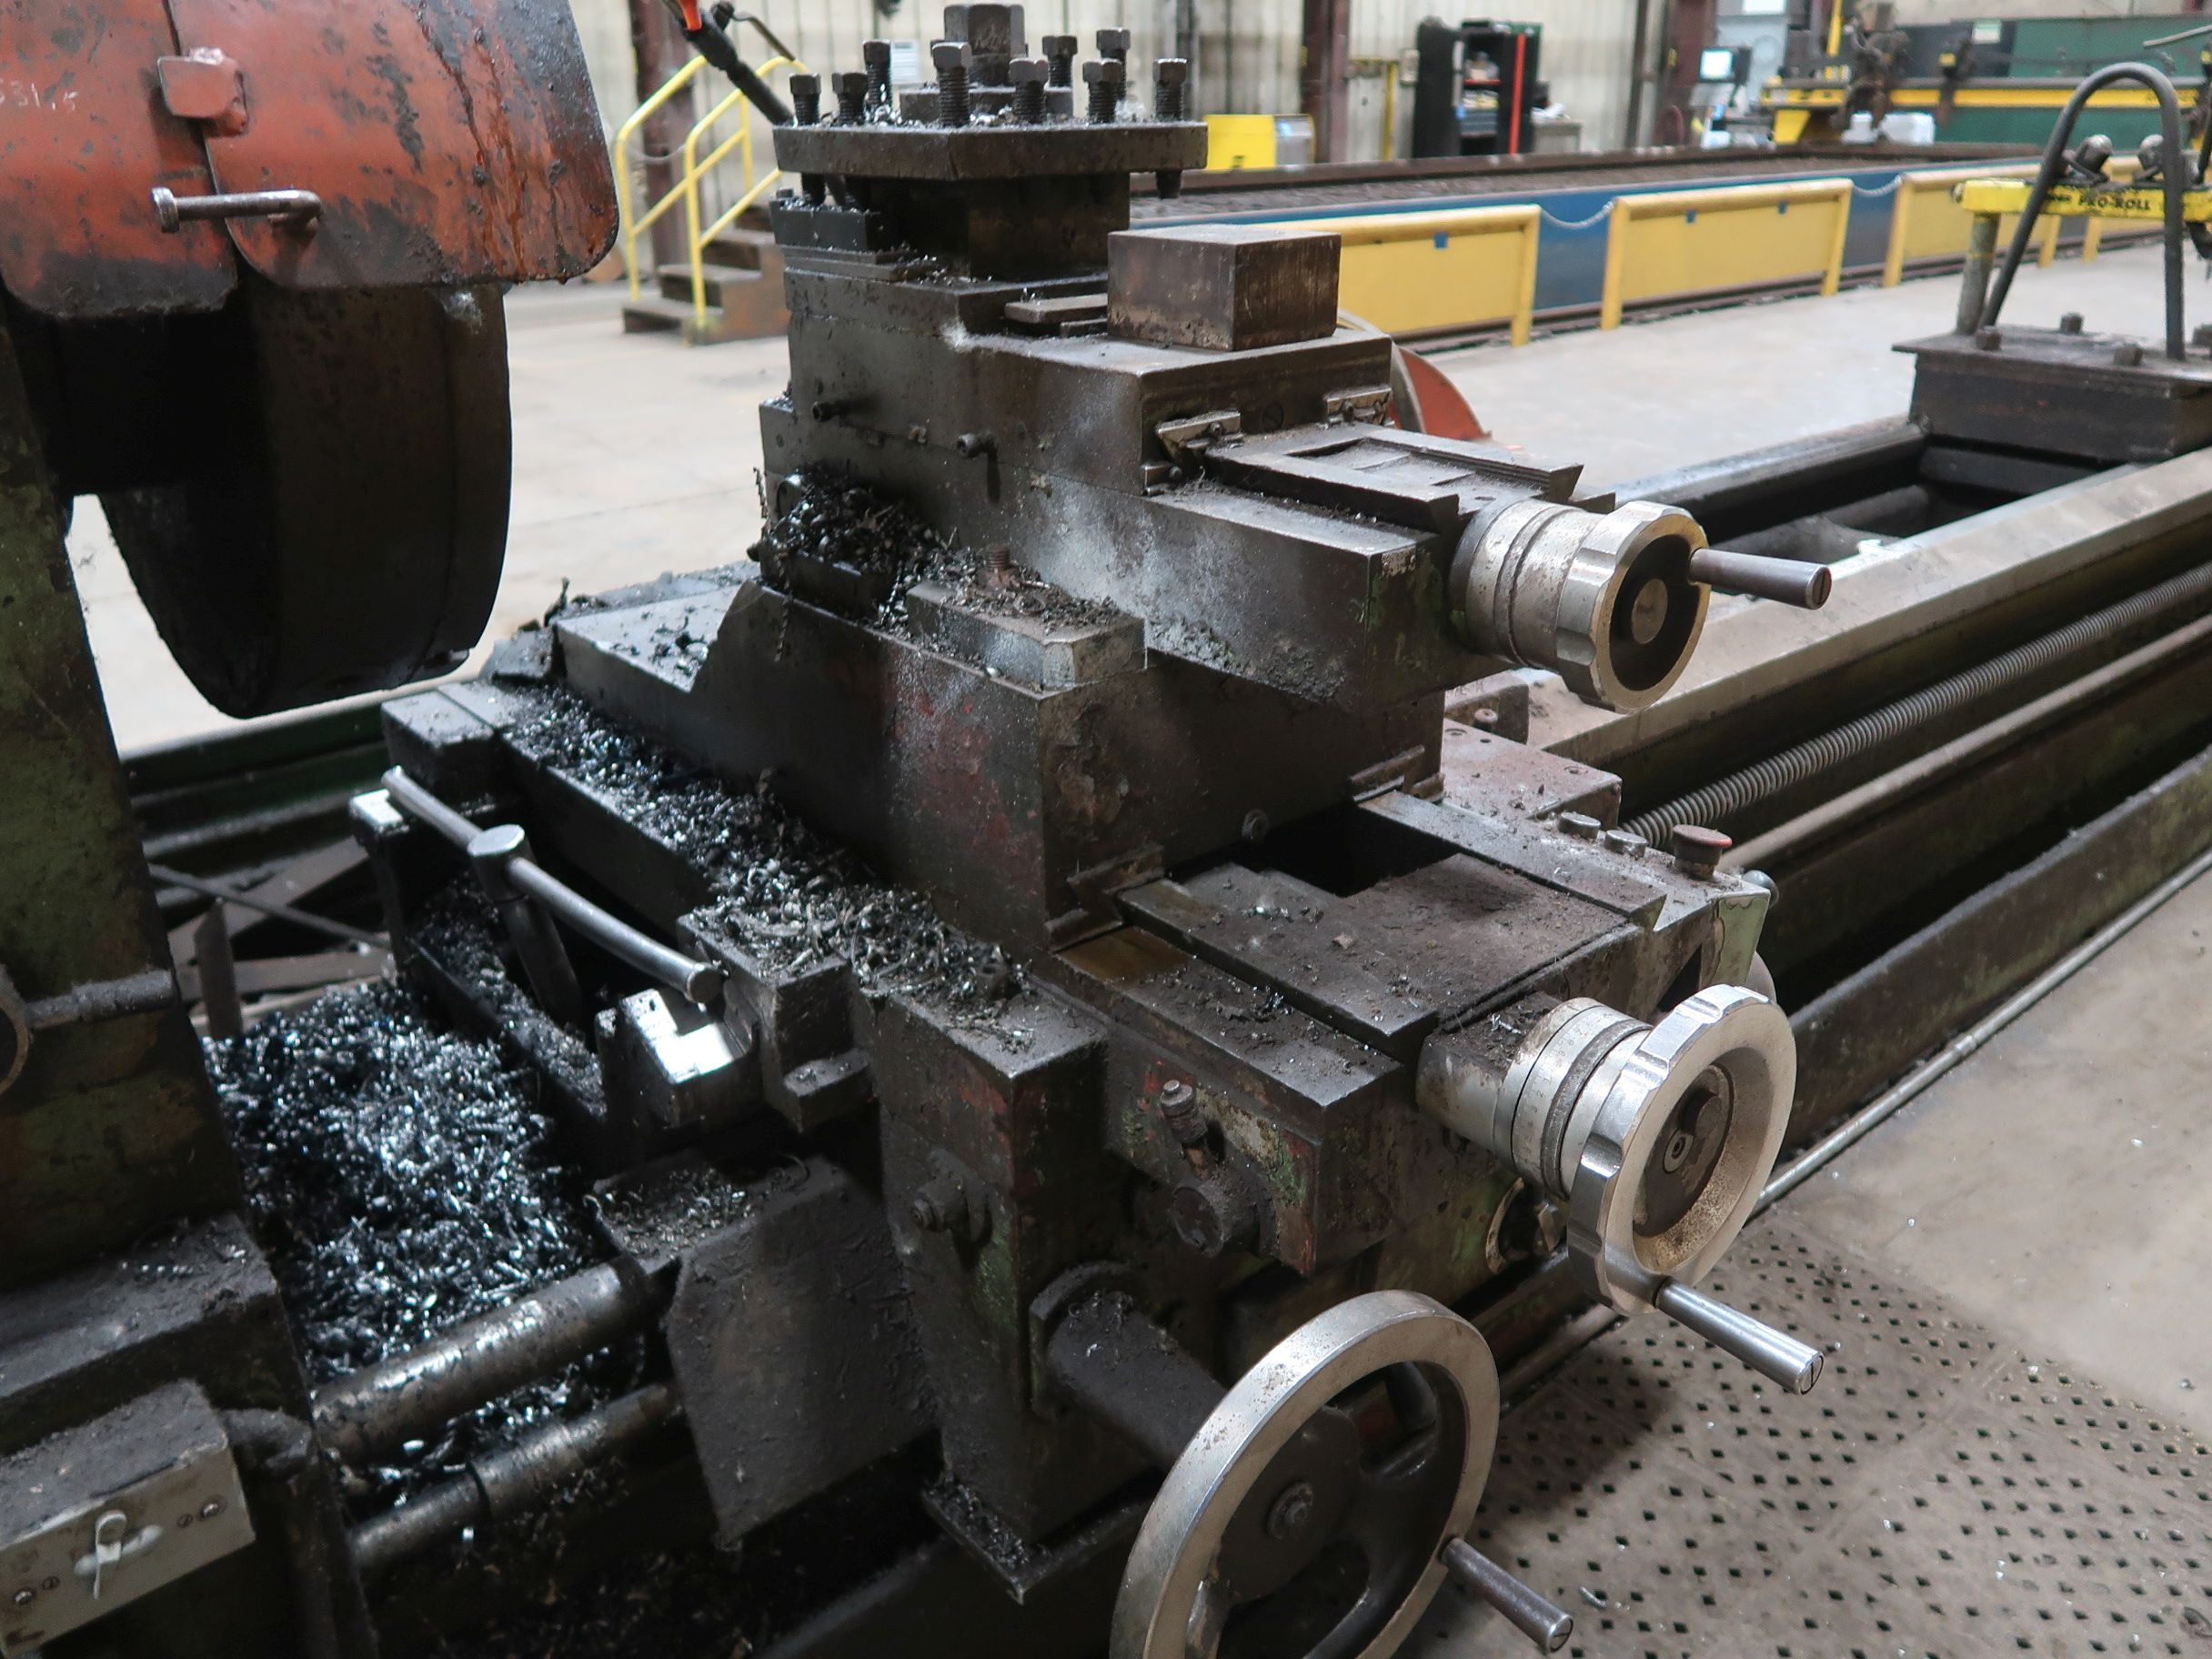 """40"""" X 160"""" GRUTZPE TIMEMASTER MODEL 4000/500 DOUBLE CHUCK ENGINE LATHE; SPEEDS TO 500 RPM, APPROX. - Image 10 of 14"""